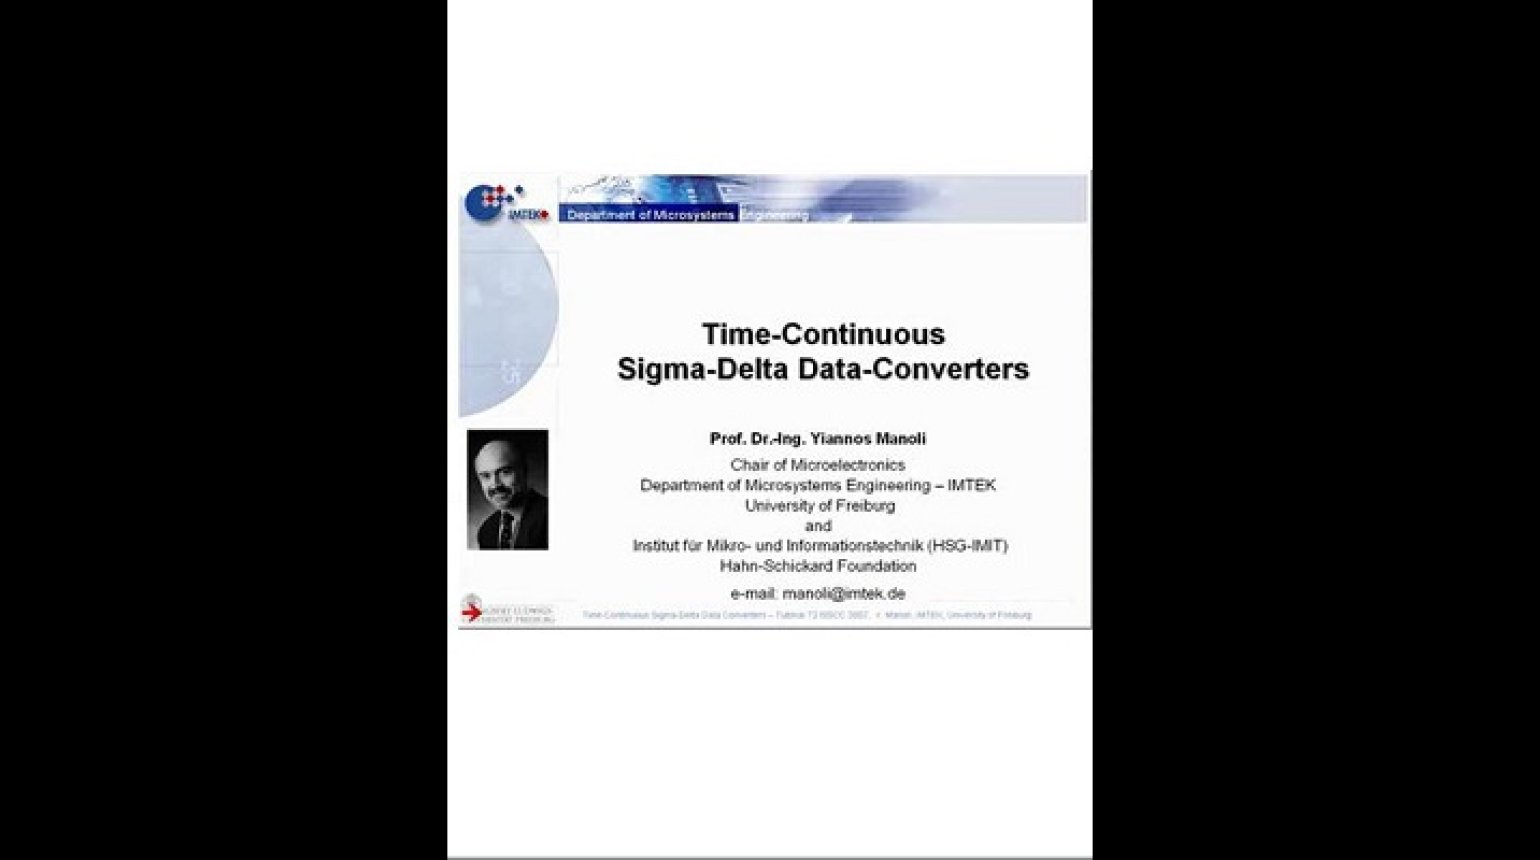 Time-Continuous Sigma-Delta Data-Converters Video